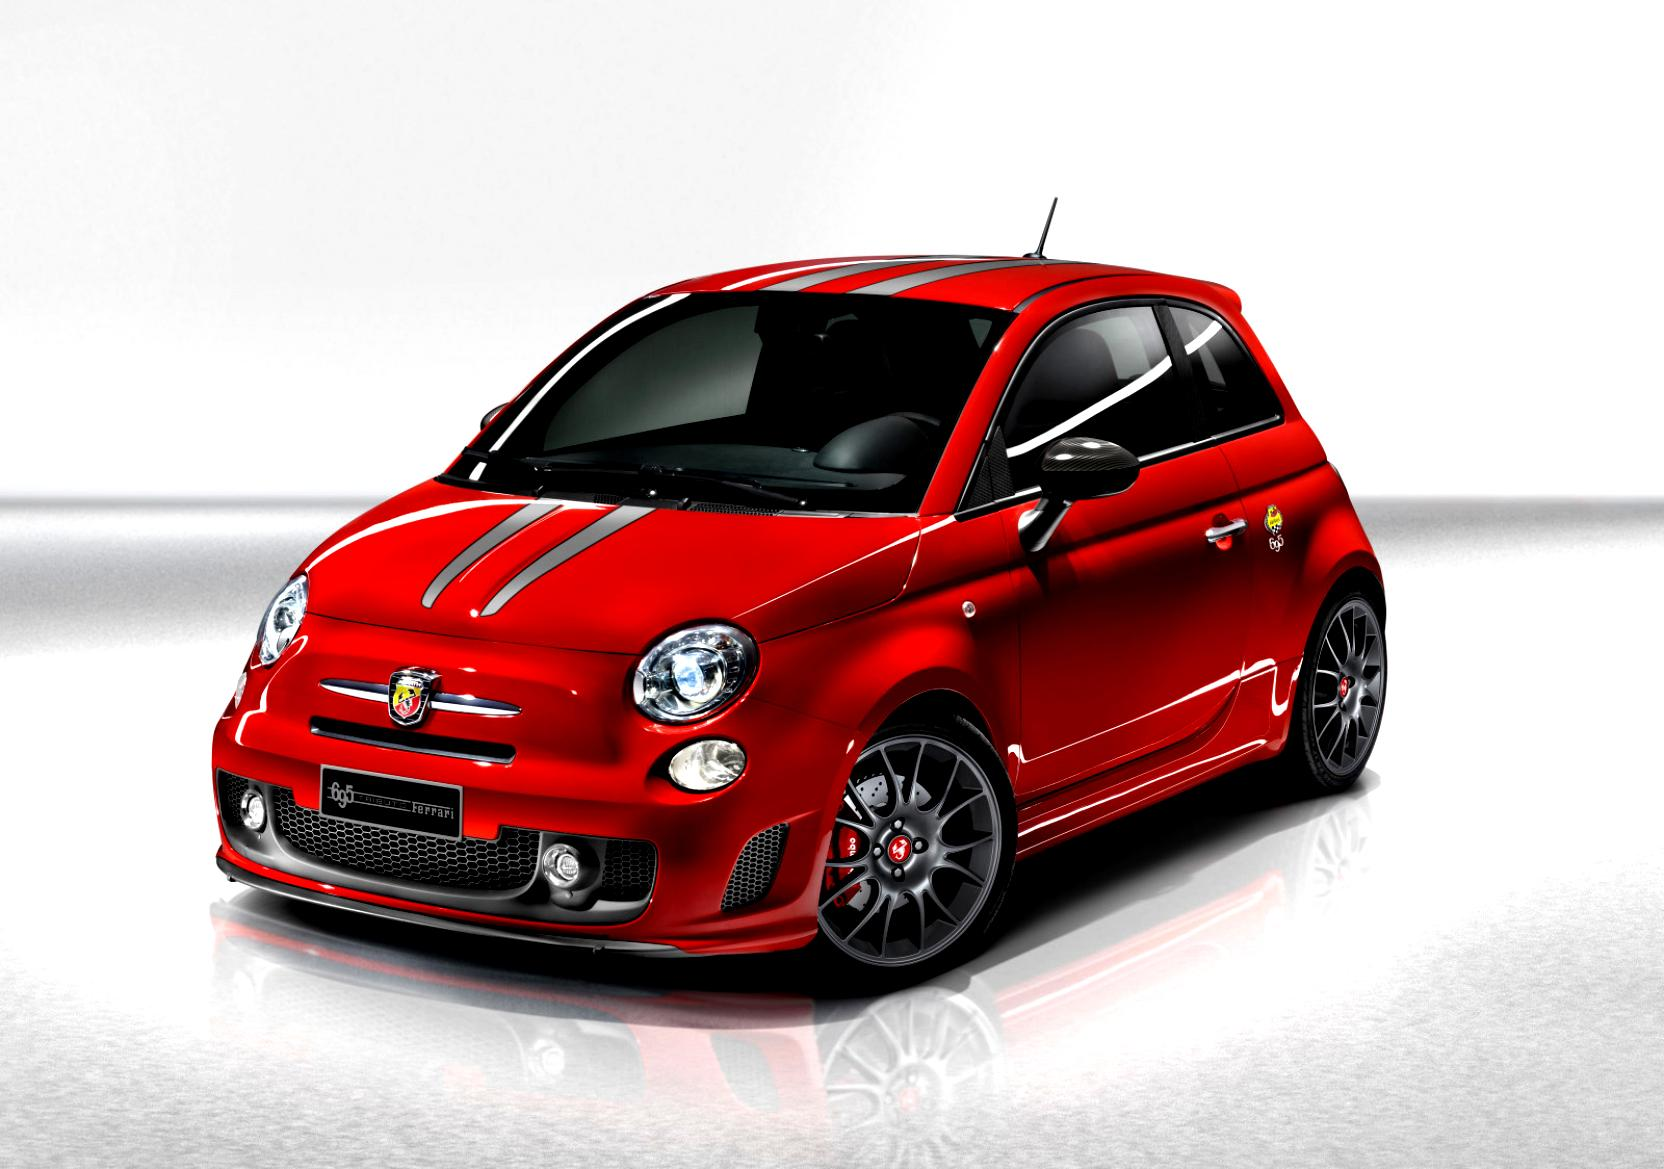 fiat 500 abarth 695 tributo ferrari 2009 on. Black Bedroom Furniture Sets. Home Design Ideas